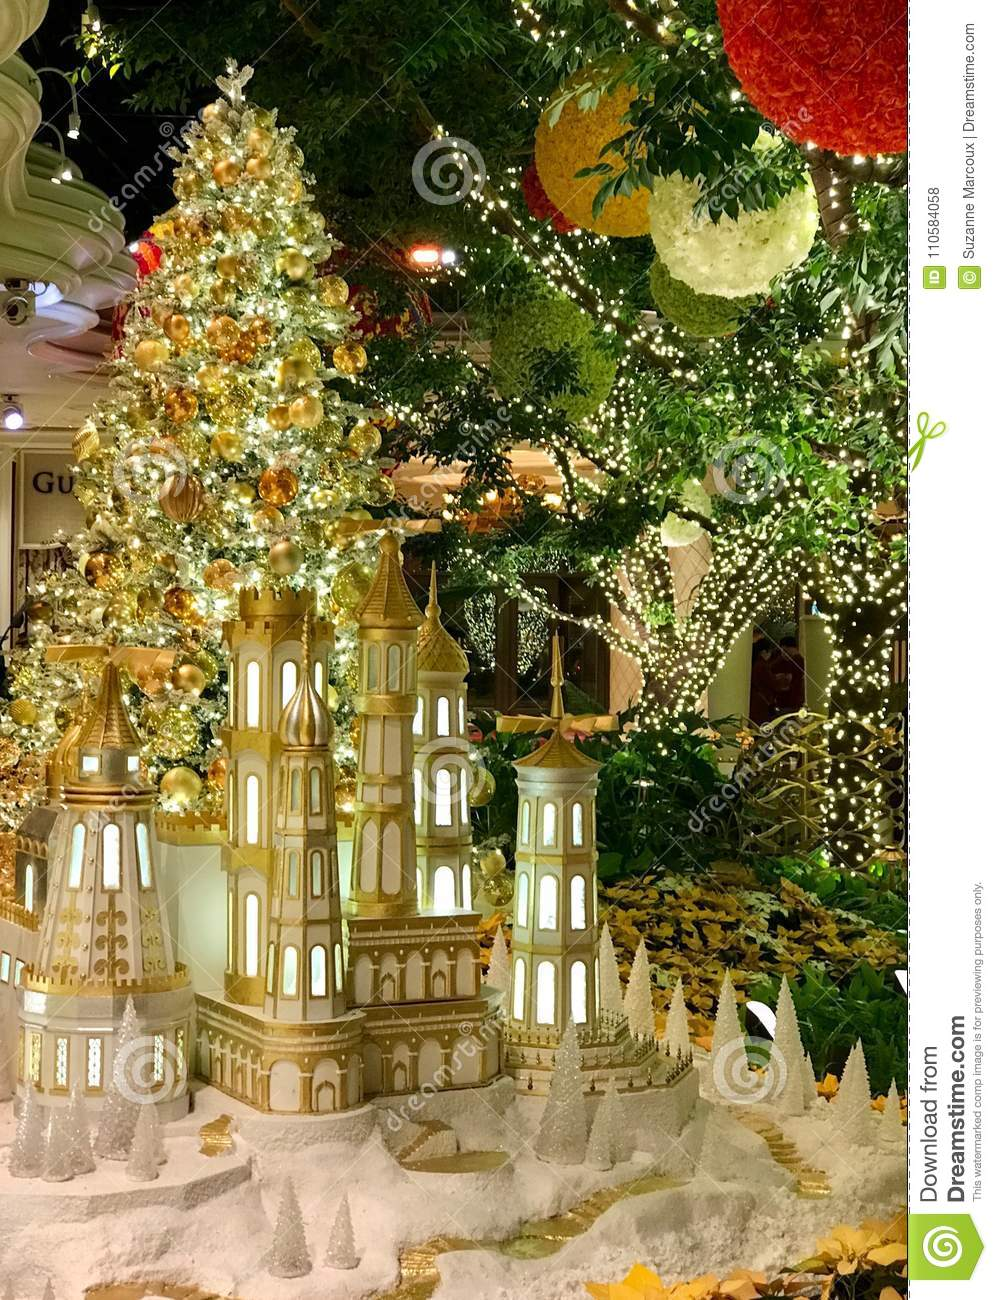 Christmas Decorations Las Vegas Nevada Stock Photo Image Of Gift